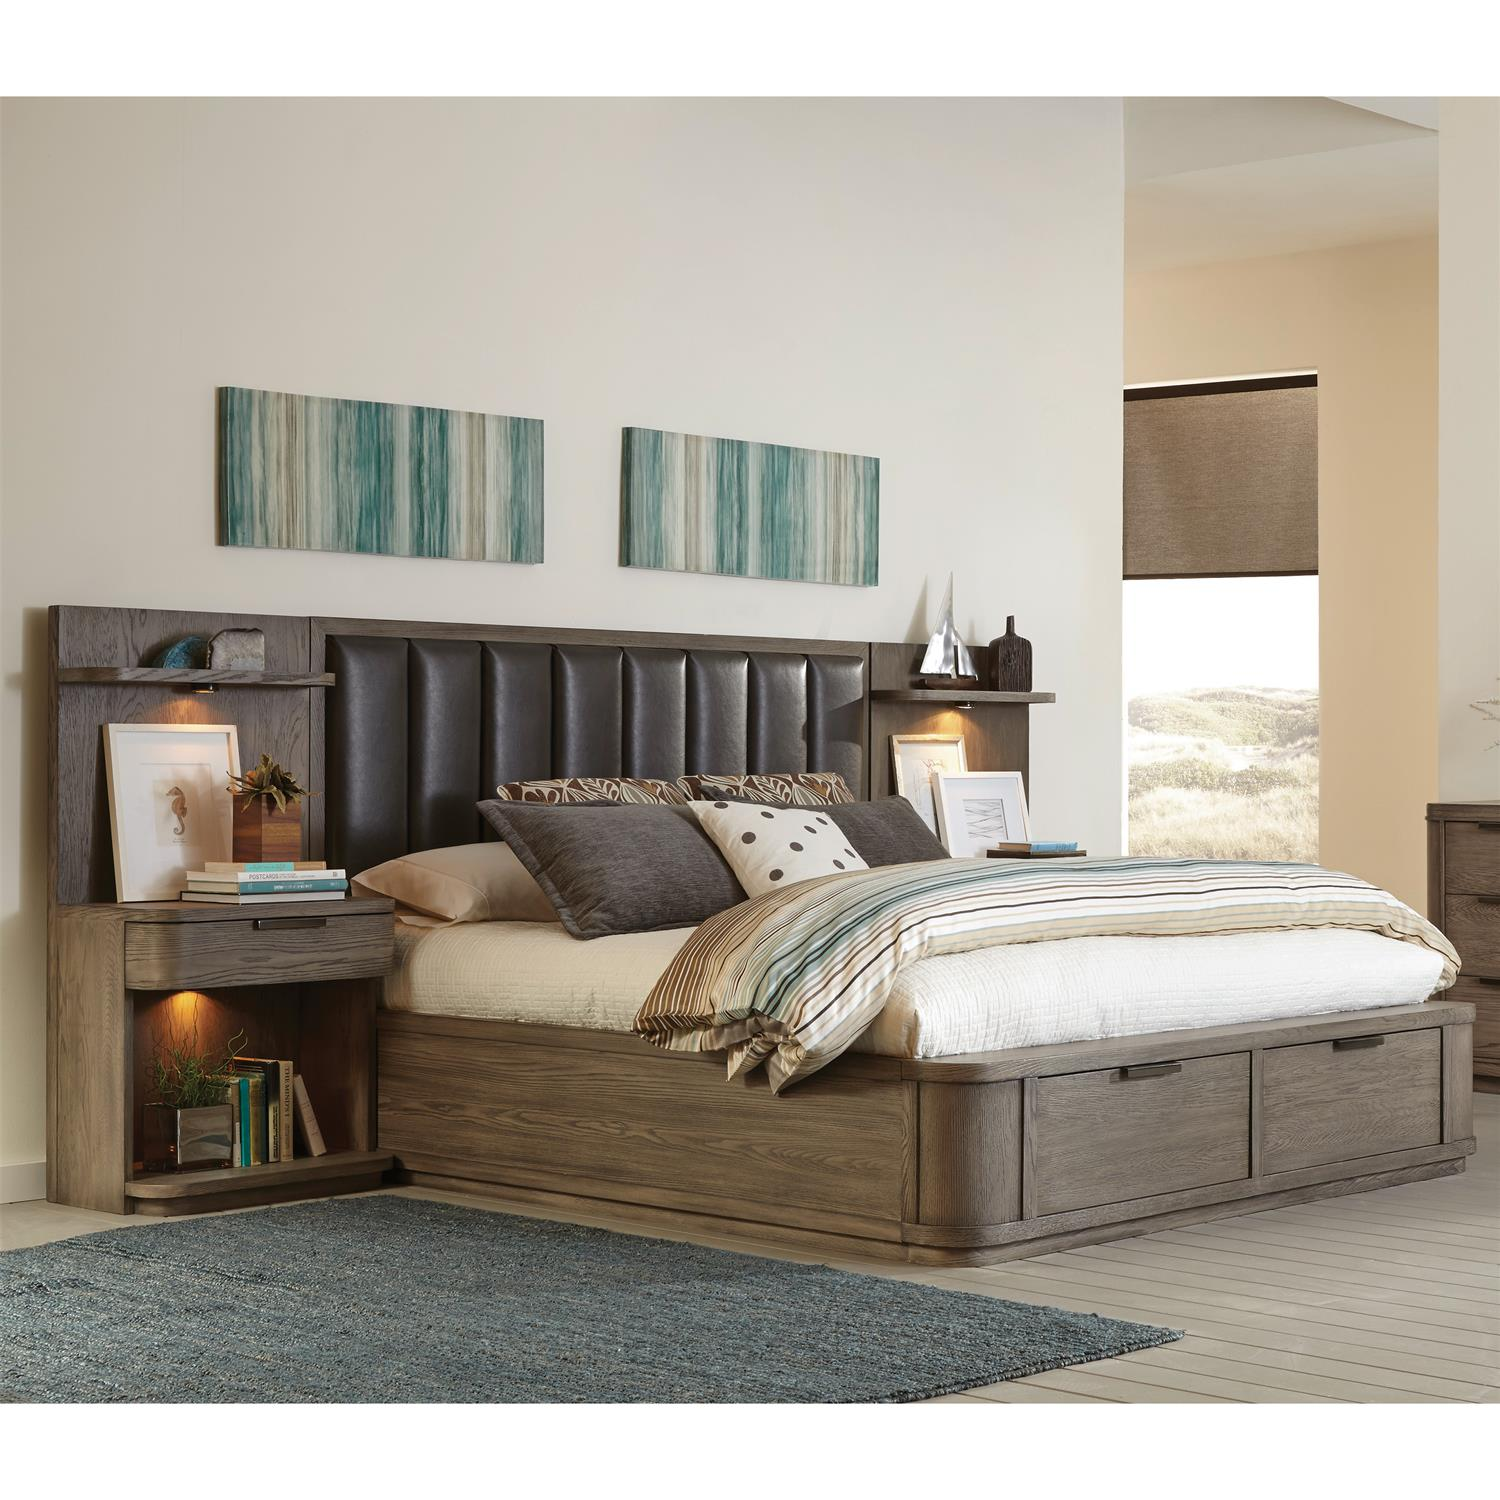 King/California King Low Upholstered Headboard